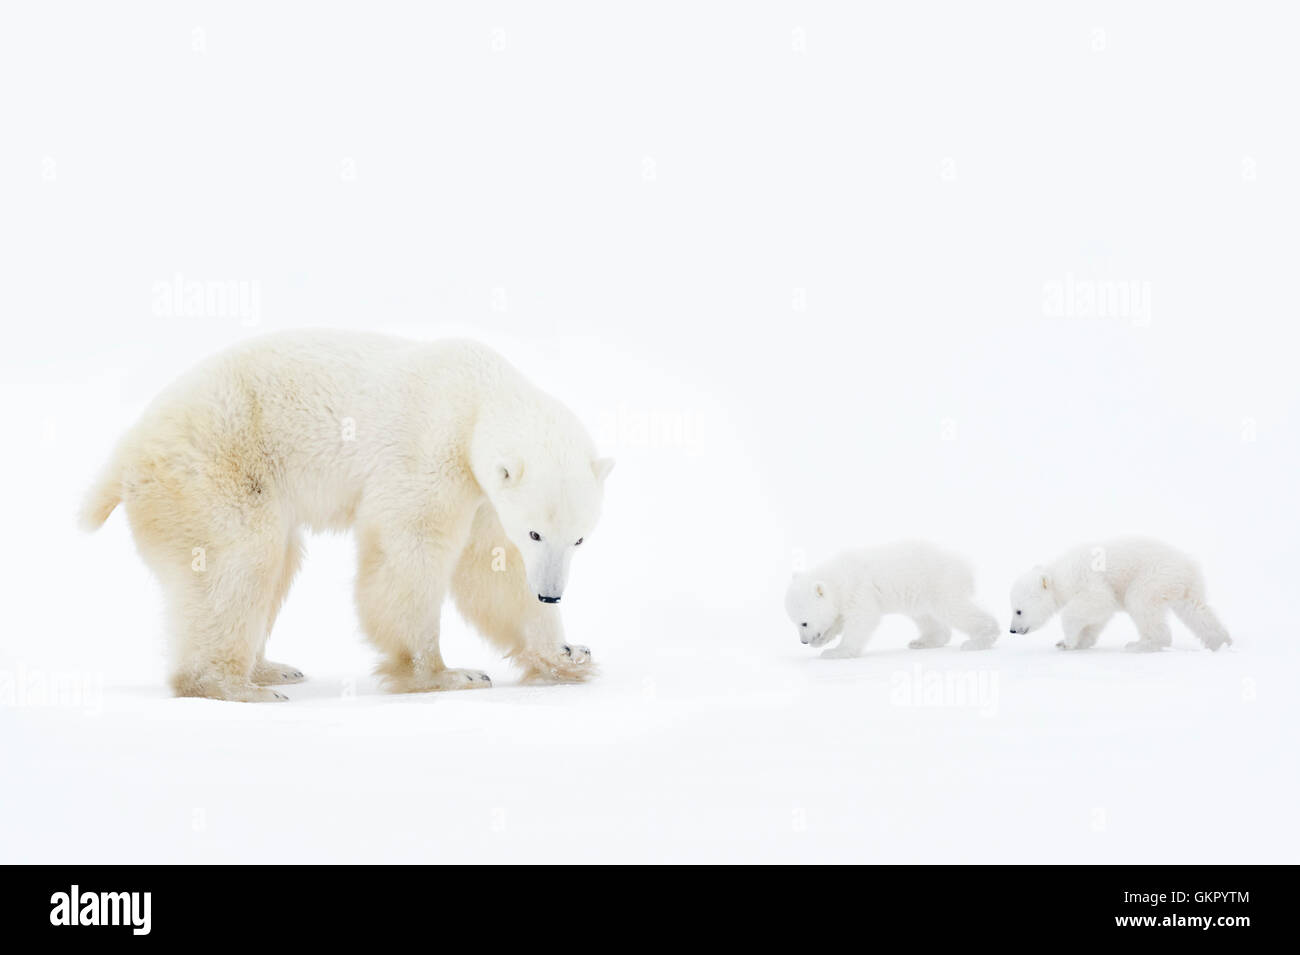 Polar bear mother (Ursus maritimus) standing on tundra with two new born cubs, Wapusk National Park, Manitoba, Canada - Stock Image